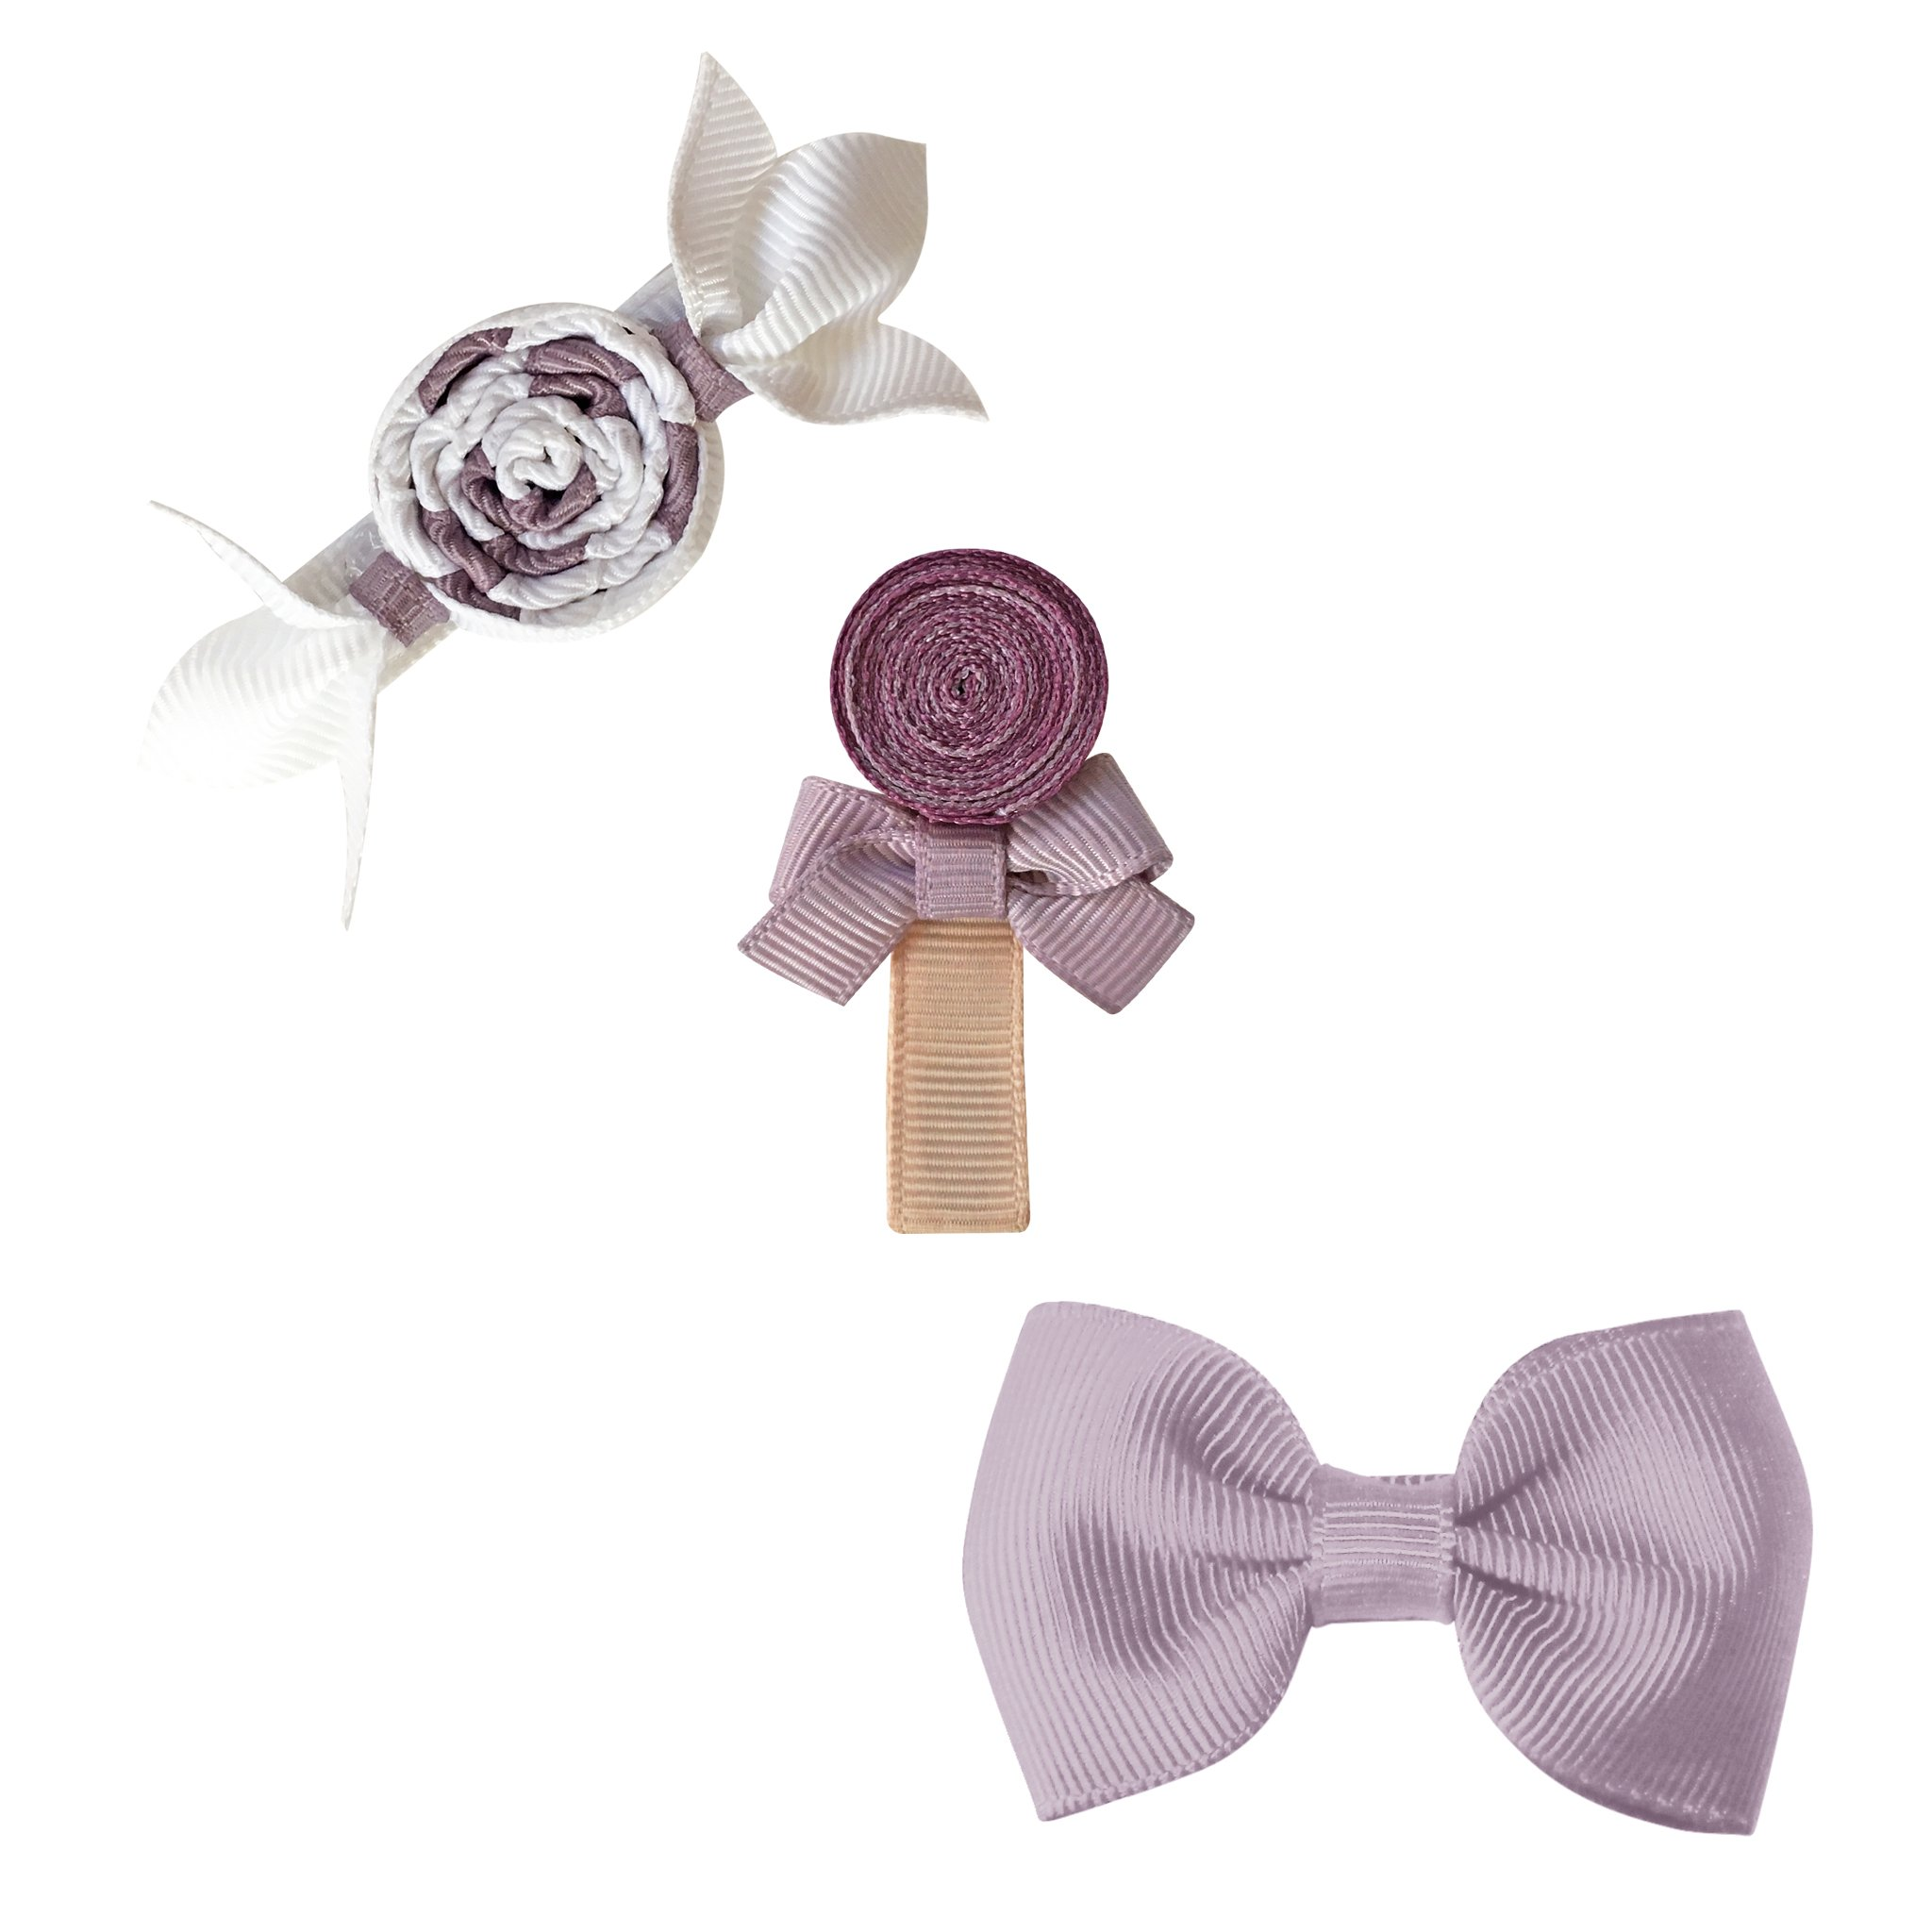 Image of Milledeux® Candy Collection gift set - Bonbon, Lollipop and Bow - thistle